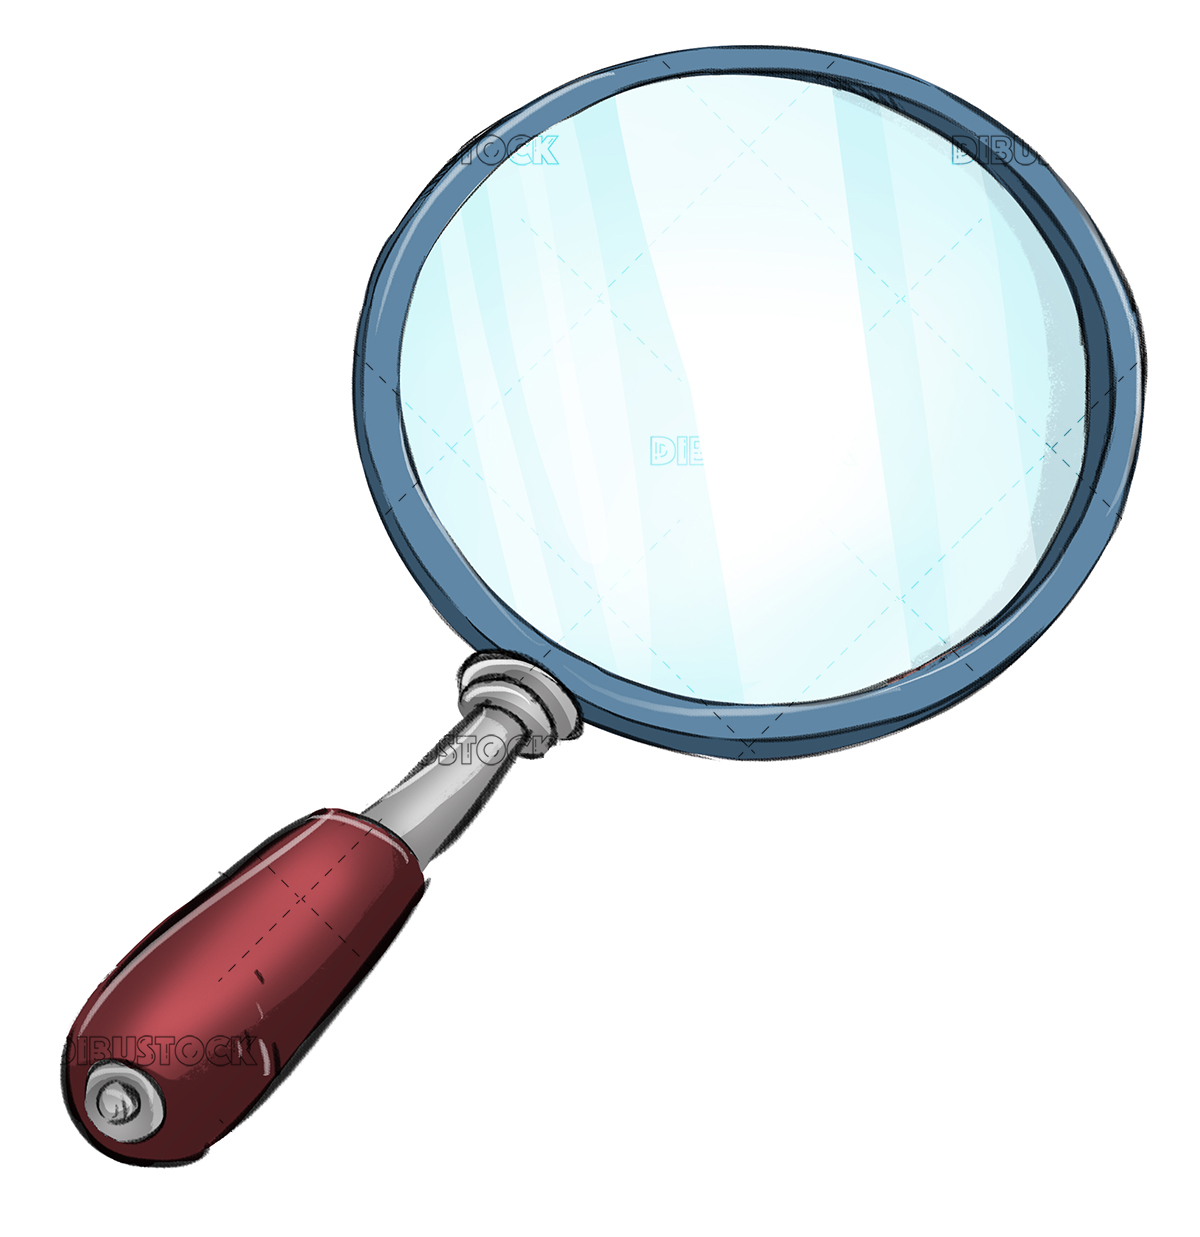 Magnifying Glass Drawing Dibustock Ilustraciones Infantiles De Stock